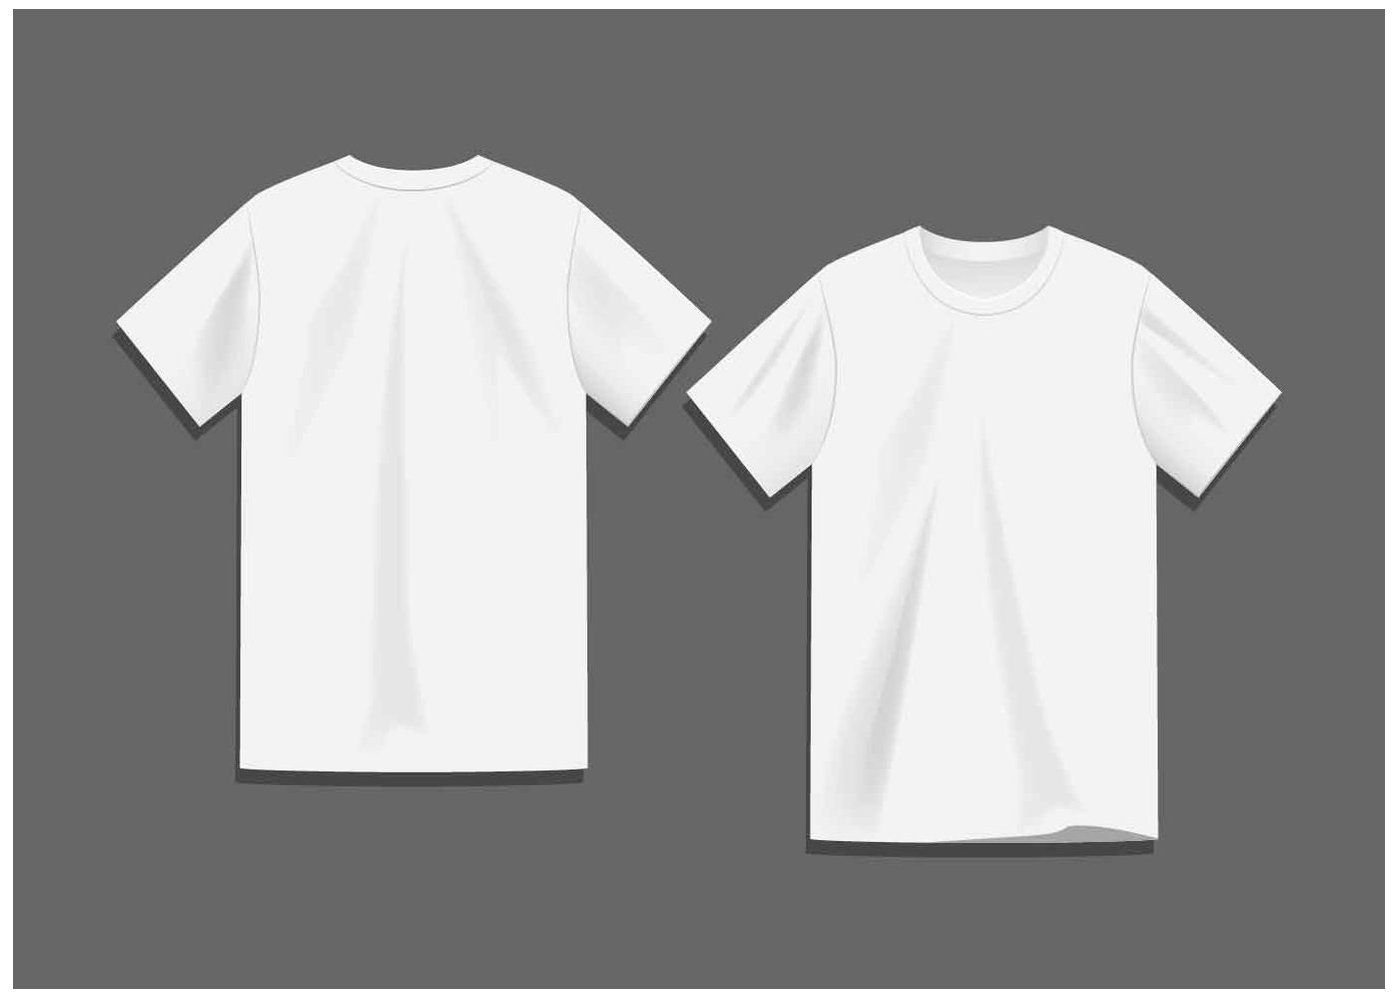 Download Download White Blank T Shirt Template Vector For Free Blank T Shirt Mockup Blankt Shirtmockup Downloa Shirt Template T Shirt Design Template Blank T Shirts